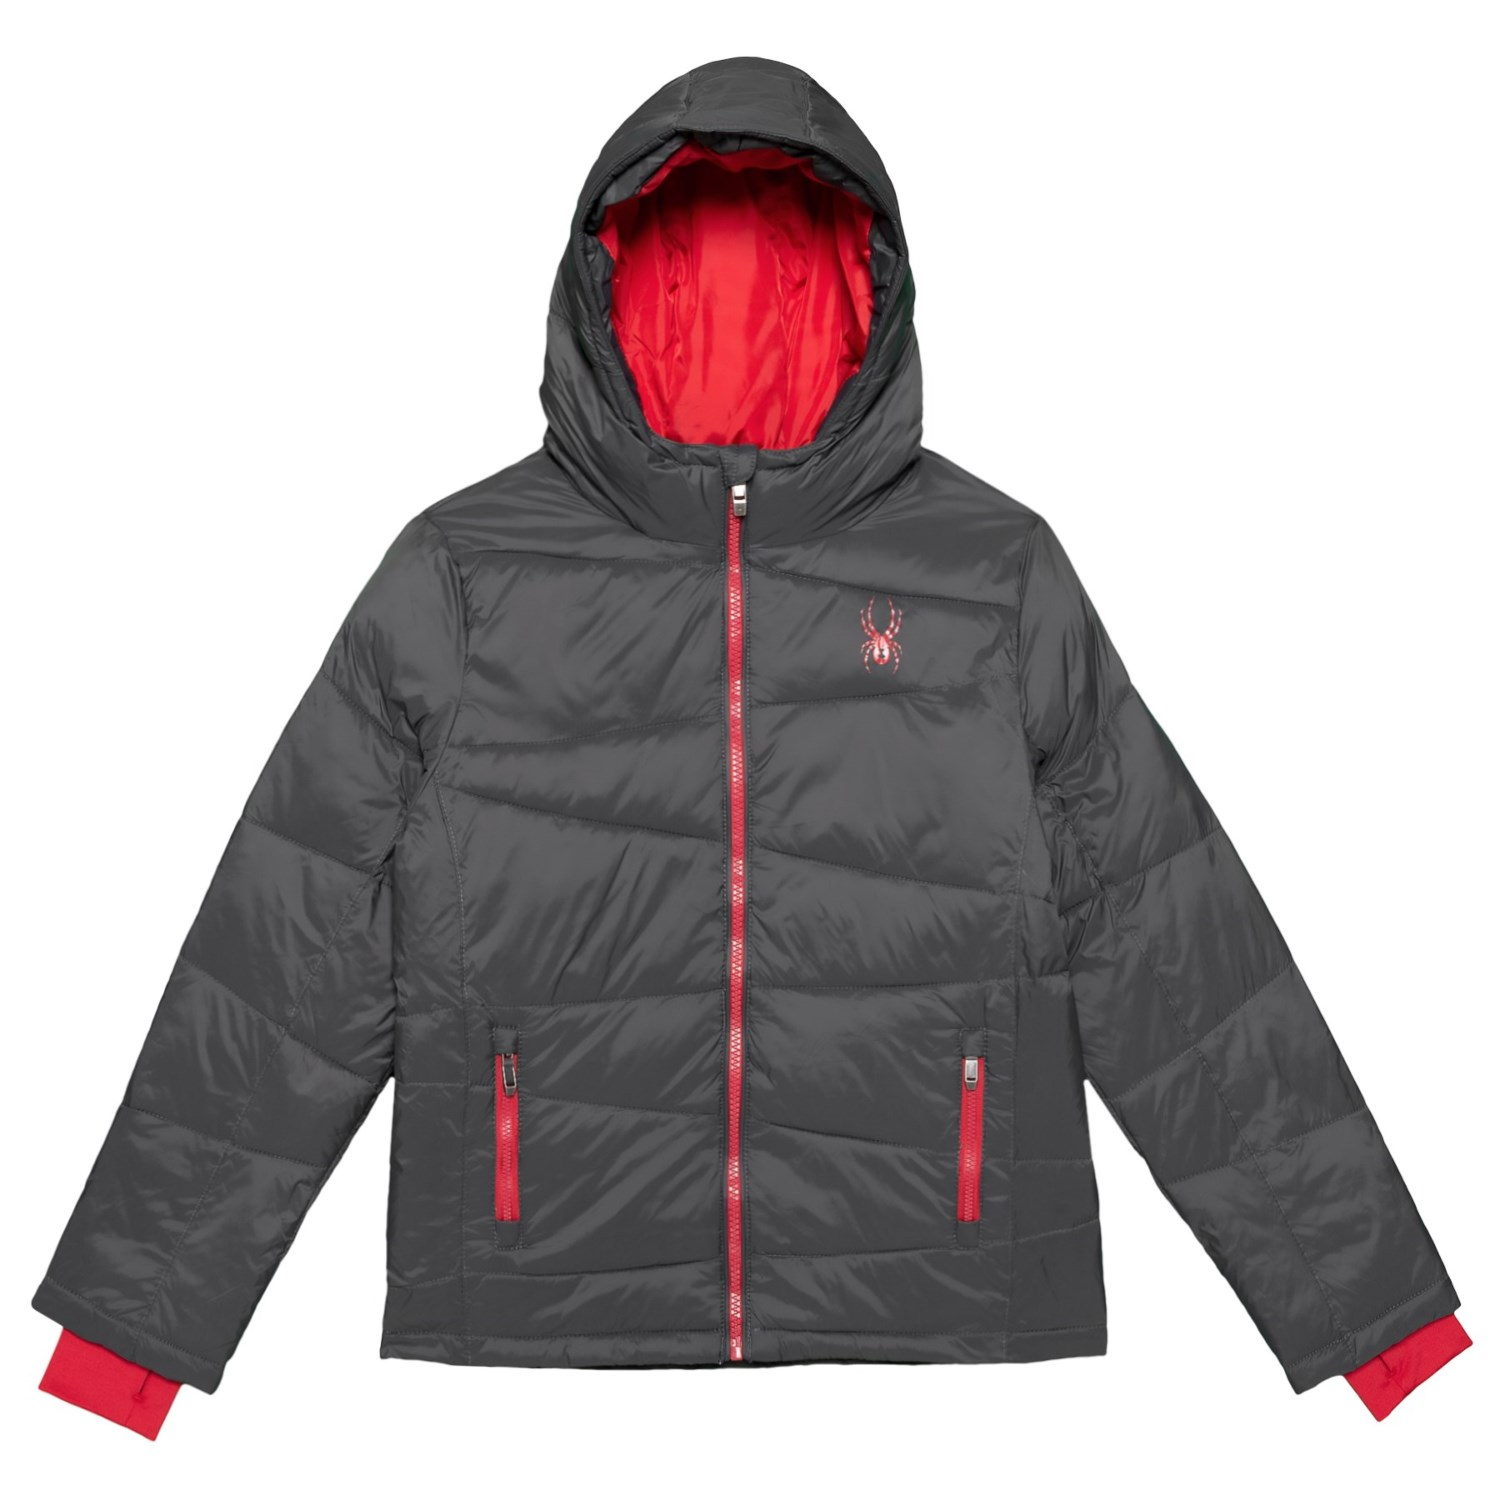 Spyder Down Jacket with Pockets Insulated, Full Zip (For Big Boys)